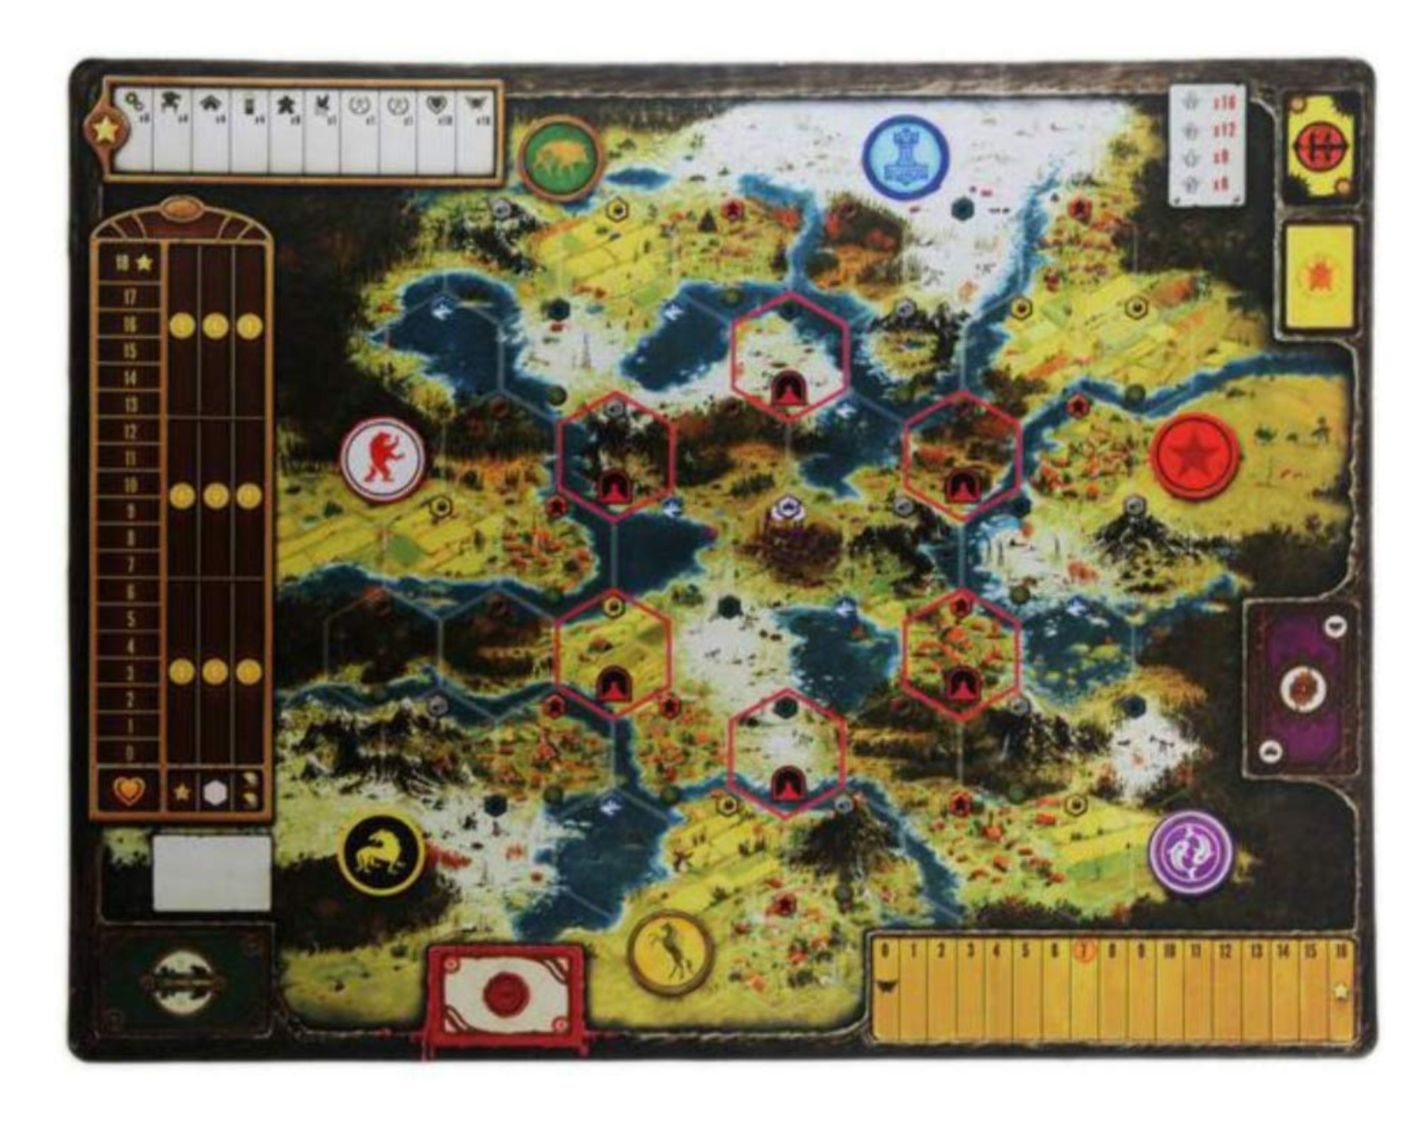 Scythe Neoprene Mat Board Game - Stonemaier Games (Expansion) front image (front cover)